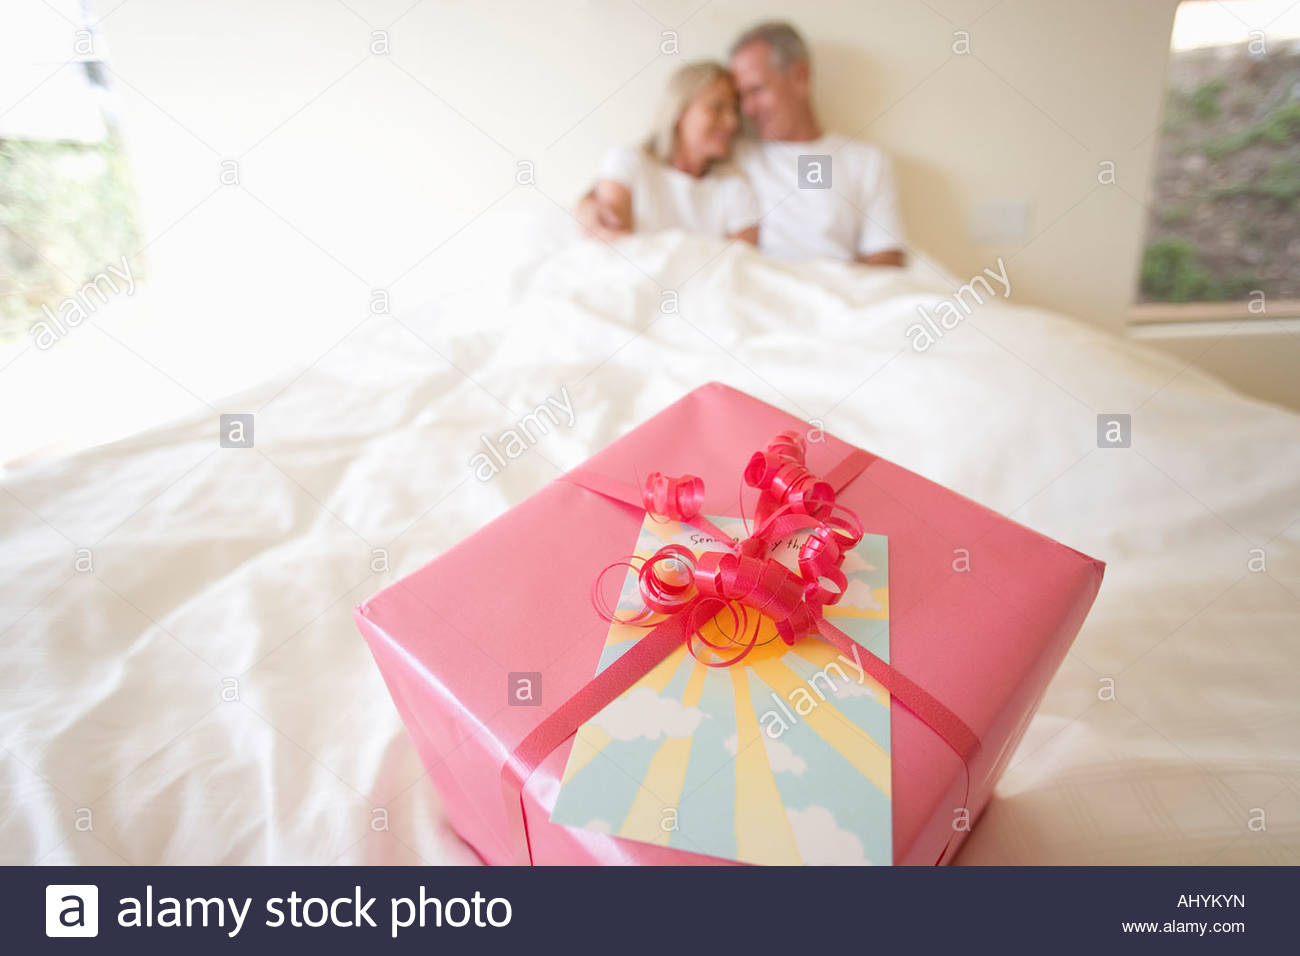 Birthday Gift Stock Photos & Birthday Gift Stock Images - Alamy